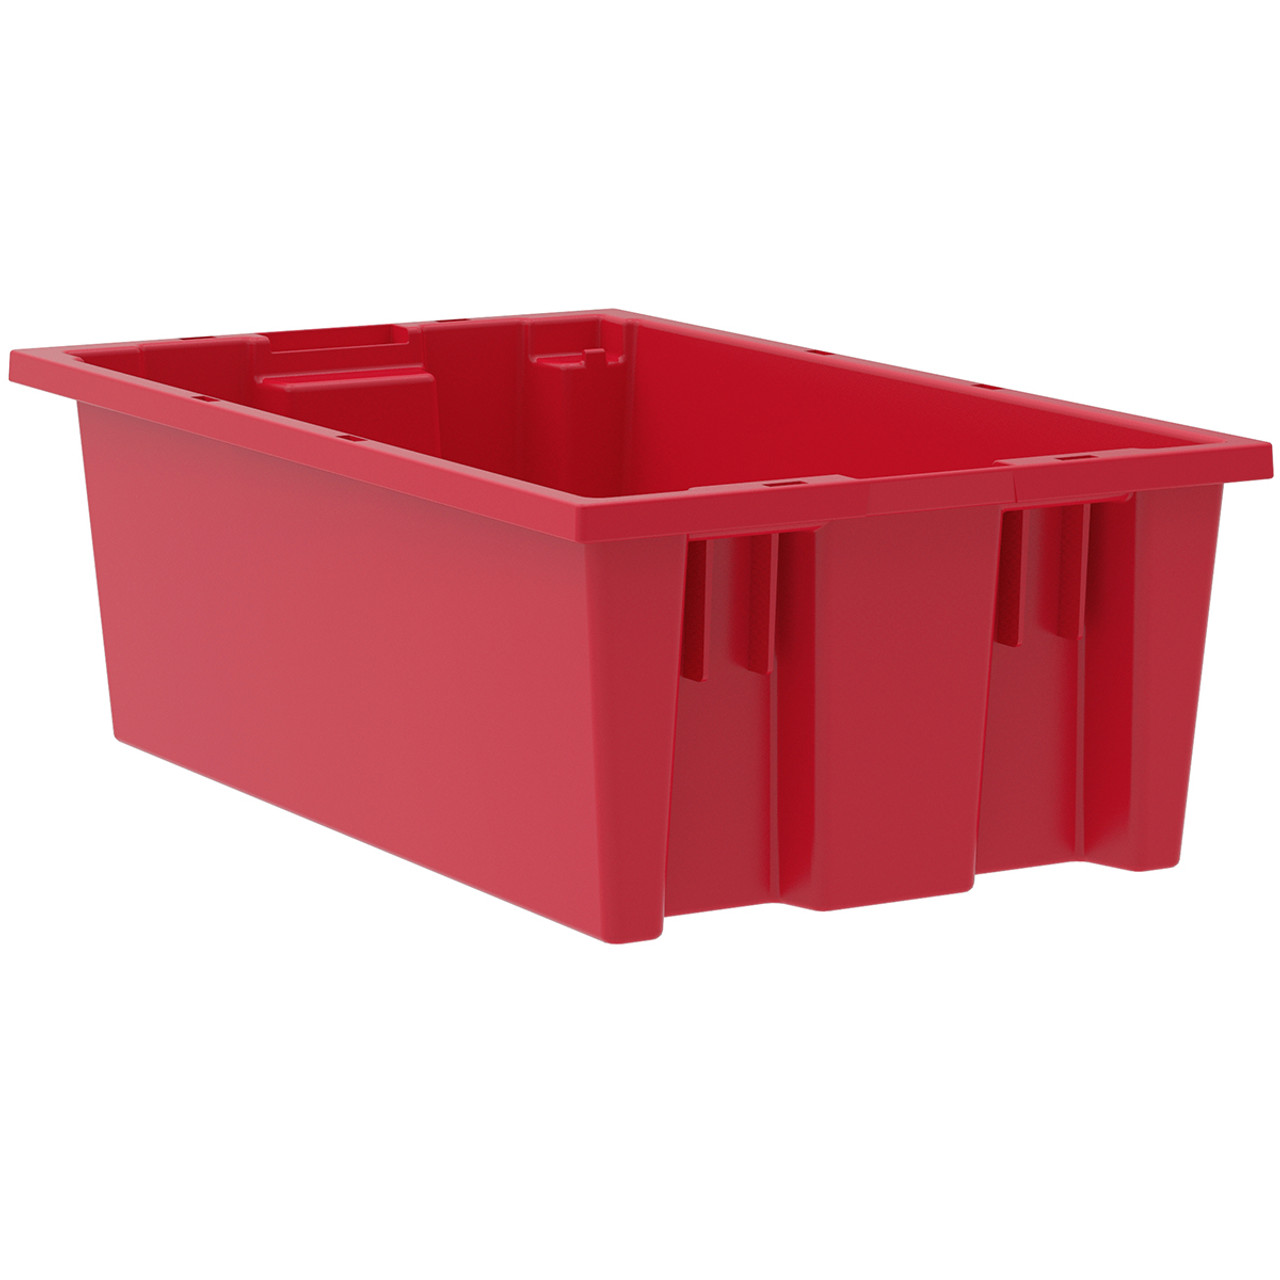 Tote, Nest & Stack Tote 18 x 11 x 6, Red  35180RED